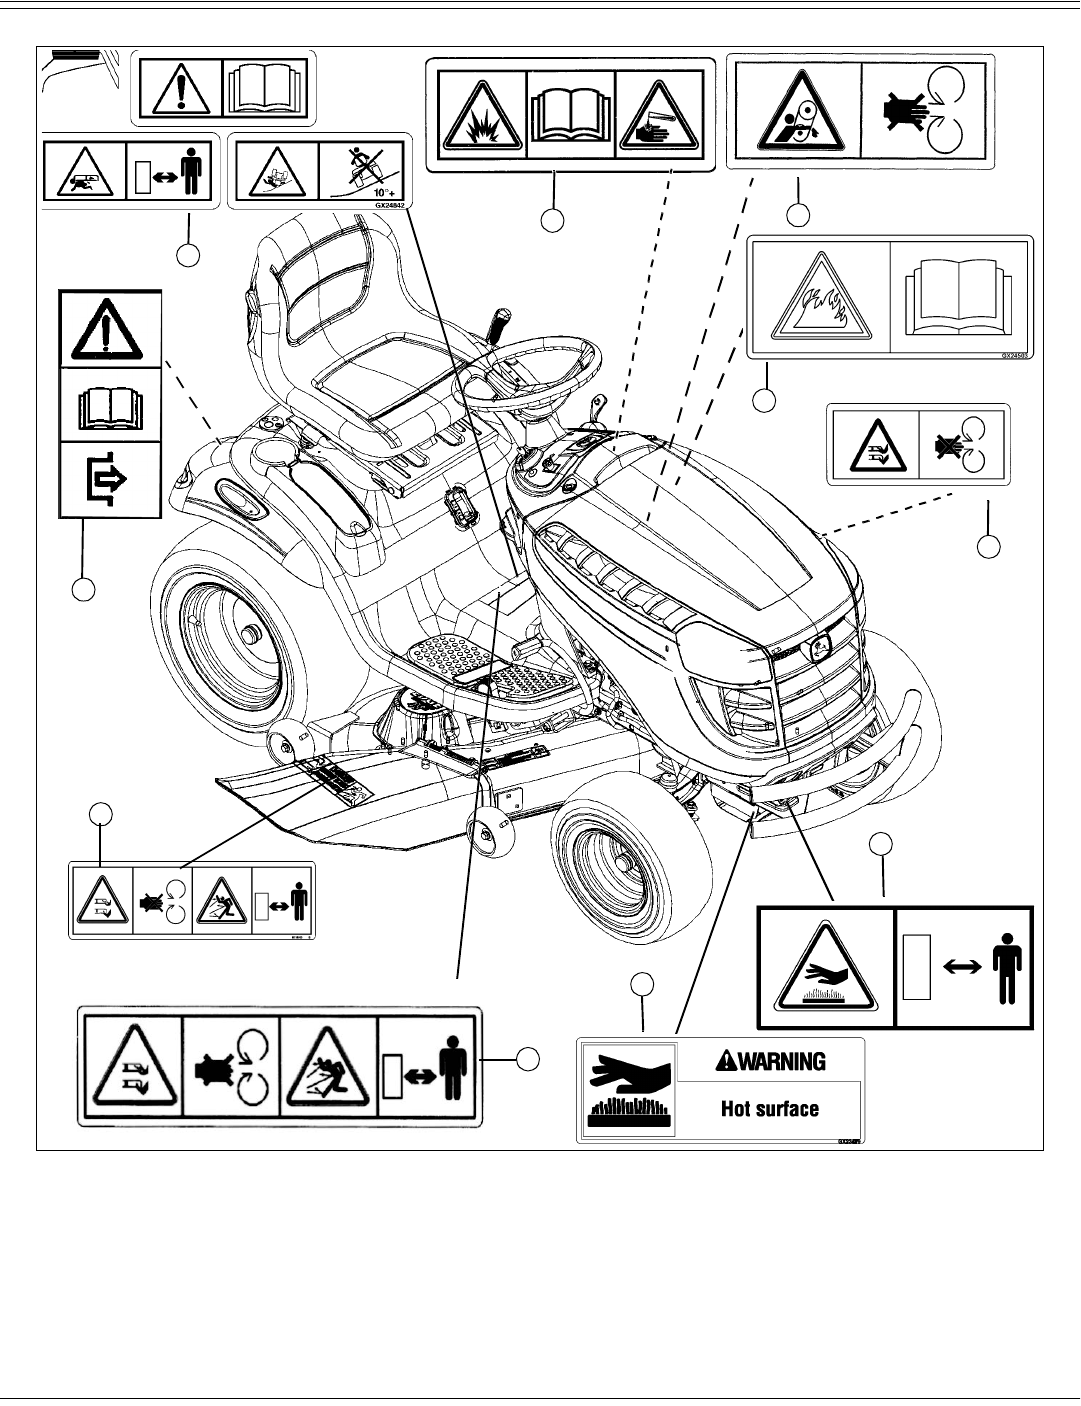 Page 5 of John Deere Products & Services Lawn Mower